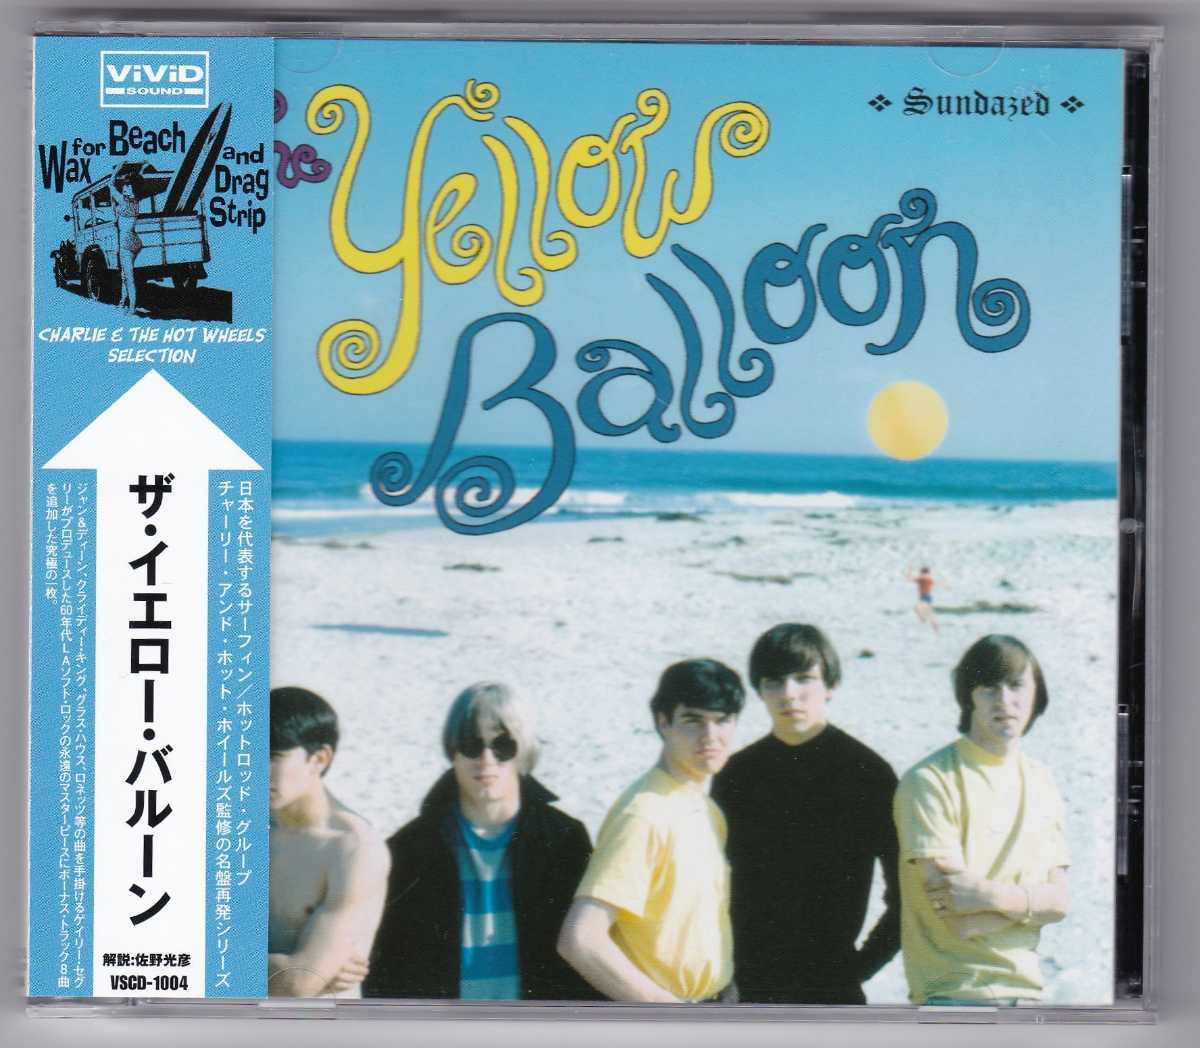 【CD】The Yellow Balloon ザ・イエロー・バルーン『The Yellow Balloon [+8]』(2006) [VSCD 1004] ソフト・ロック